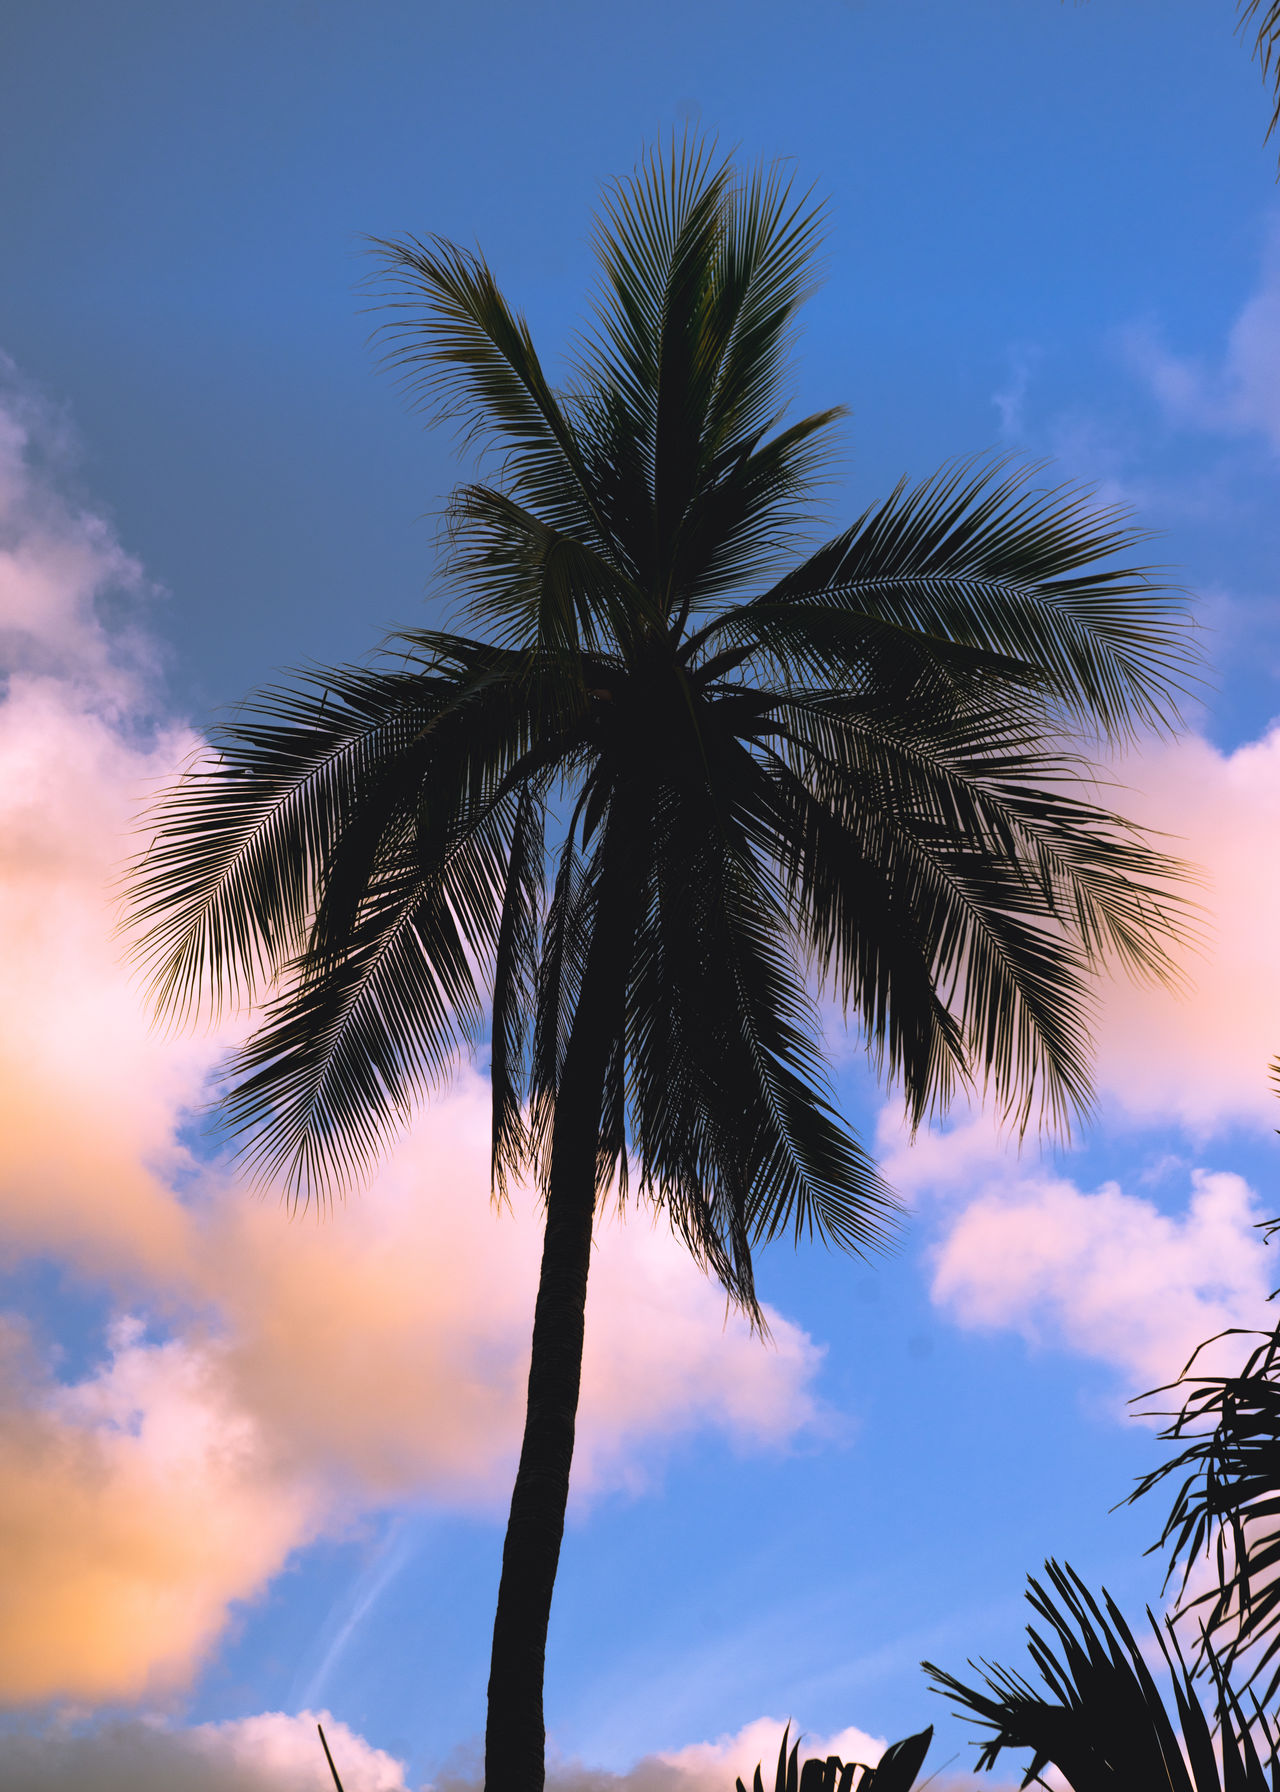 Beauty In Nature Blue Contrast Growth Low Angle View Nature Nature Nature_collection No People Outdoors Palm Tree Palm Tree Scenics Shillouette Sky Summer Summertime Sunset Sunset Silhouettes Sunset_collection Tranquility Travel Travel Photography Tree Tree Trunk